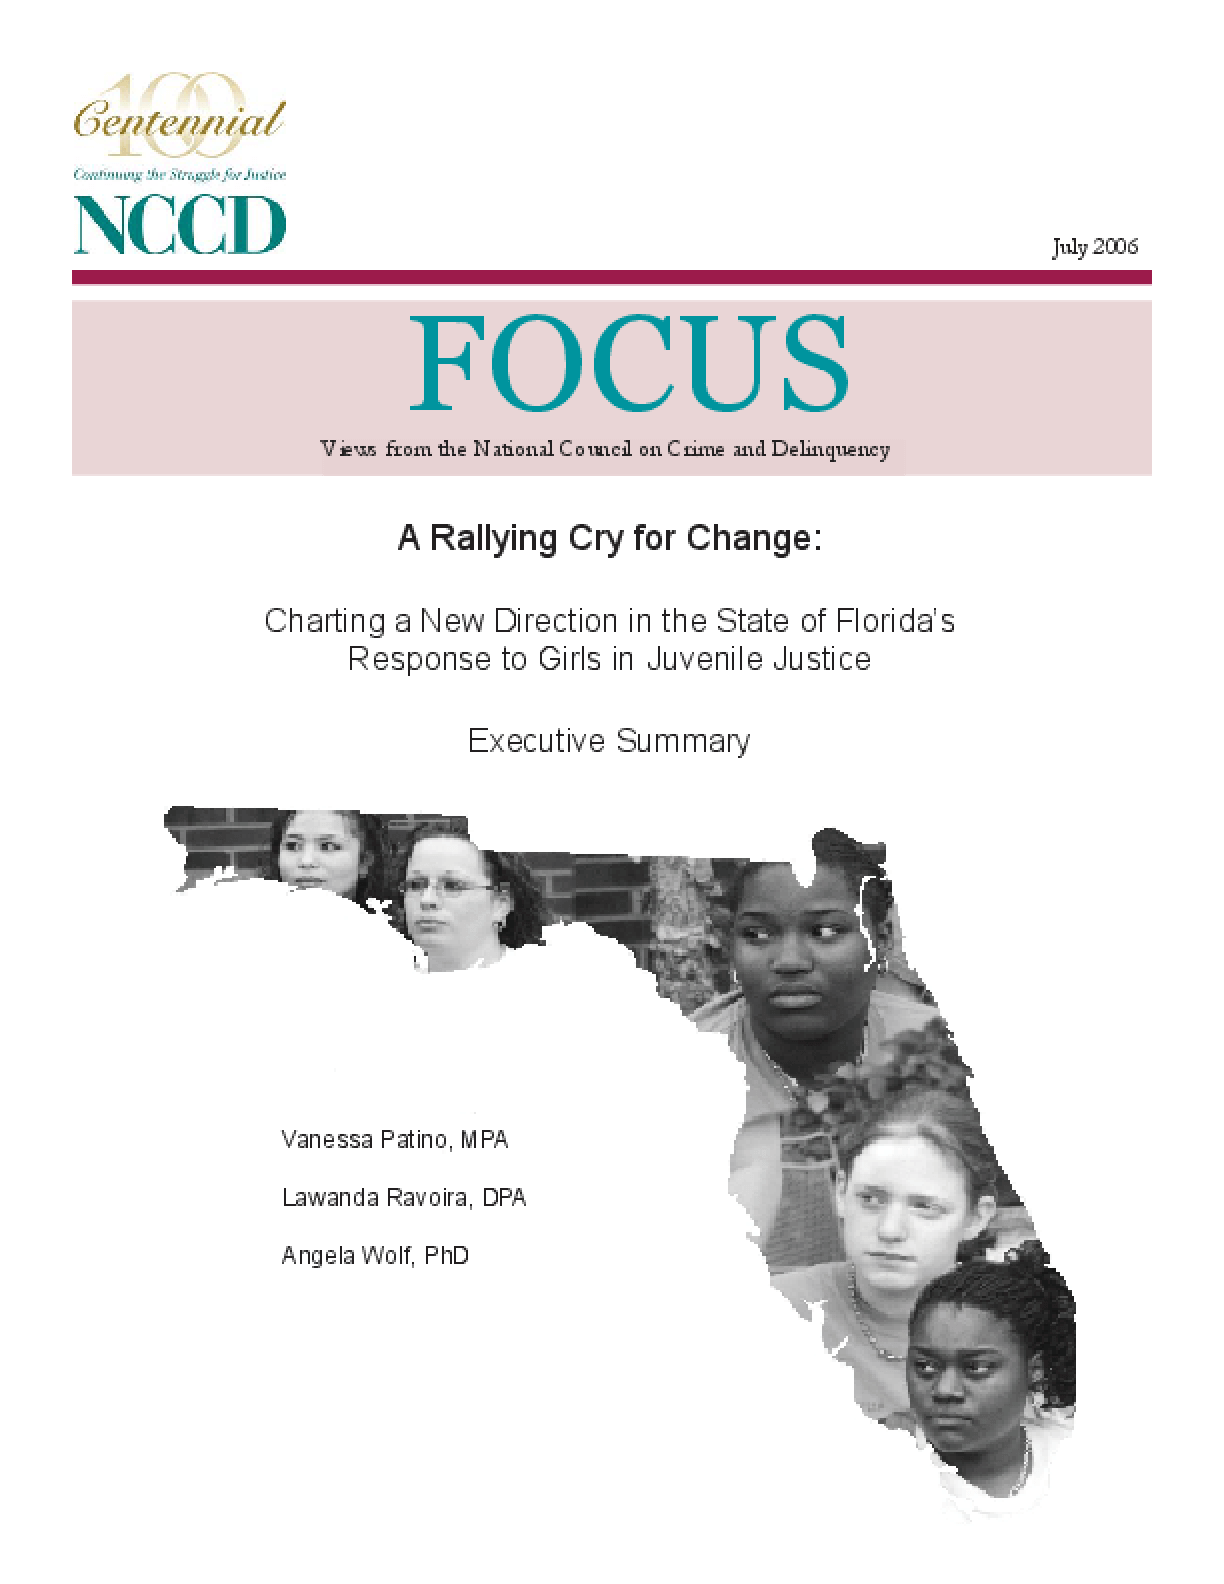 A Rallying Cry for Change: Charting a New Direction in the State of Florida's Response to Girls in Juvenile Justice (Executive Summary) (Focus)